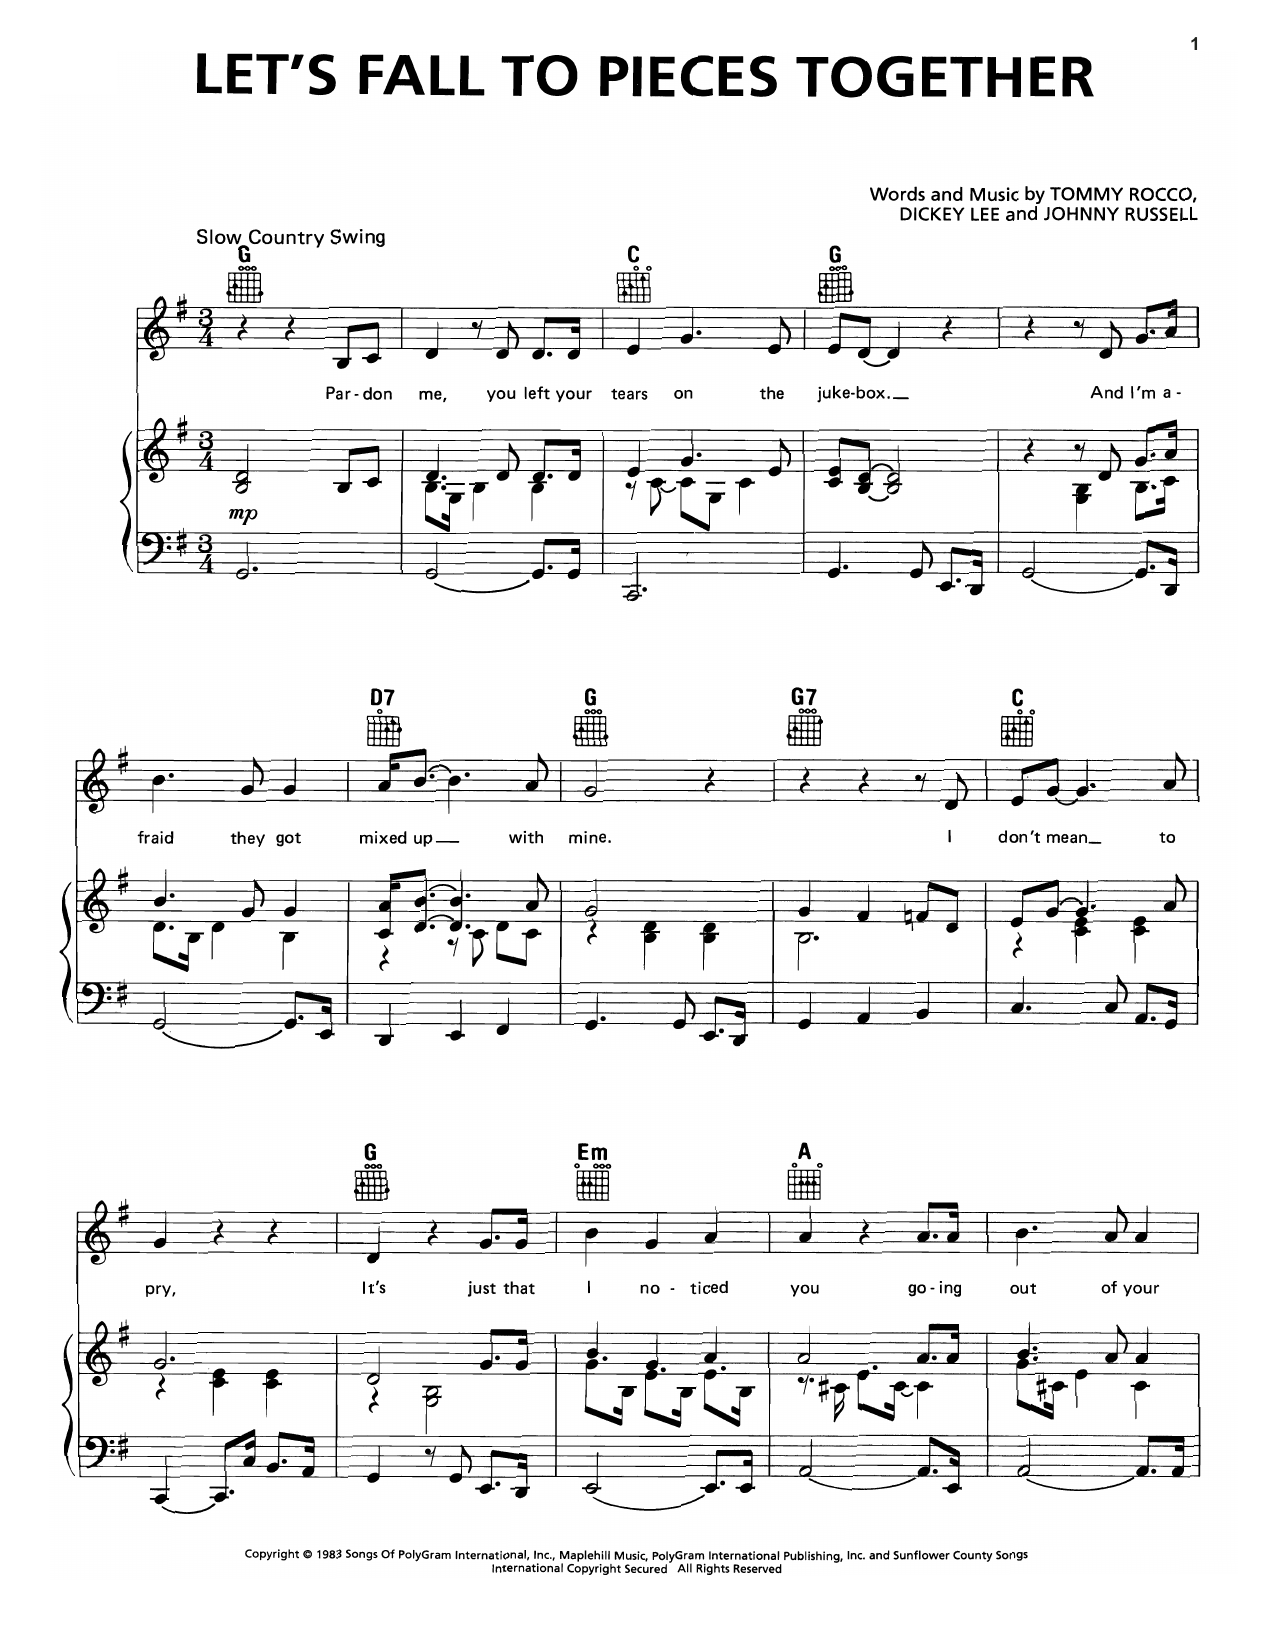 Let's Fall To Pieces Together Sheet Music